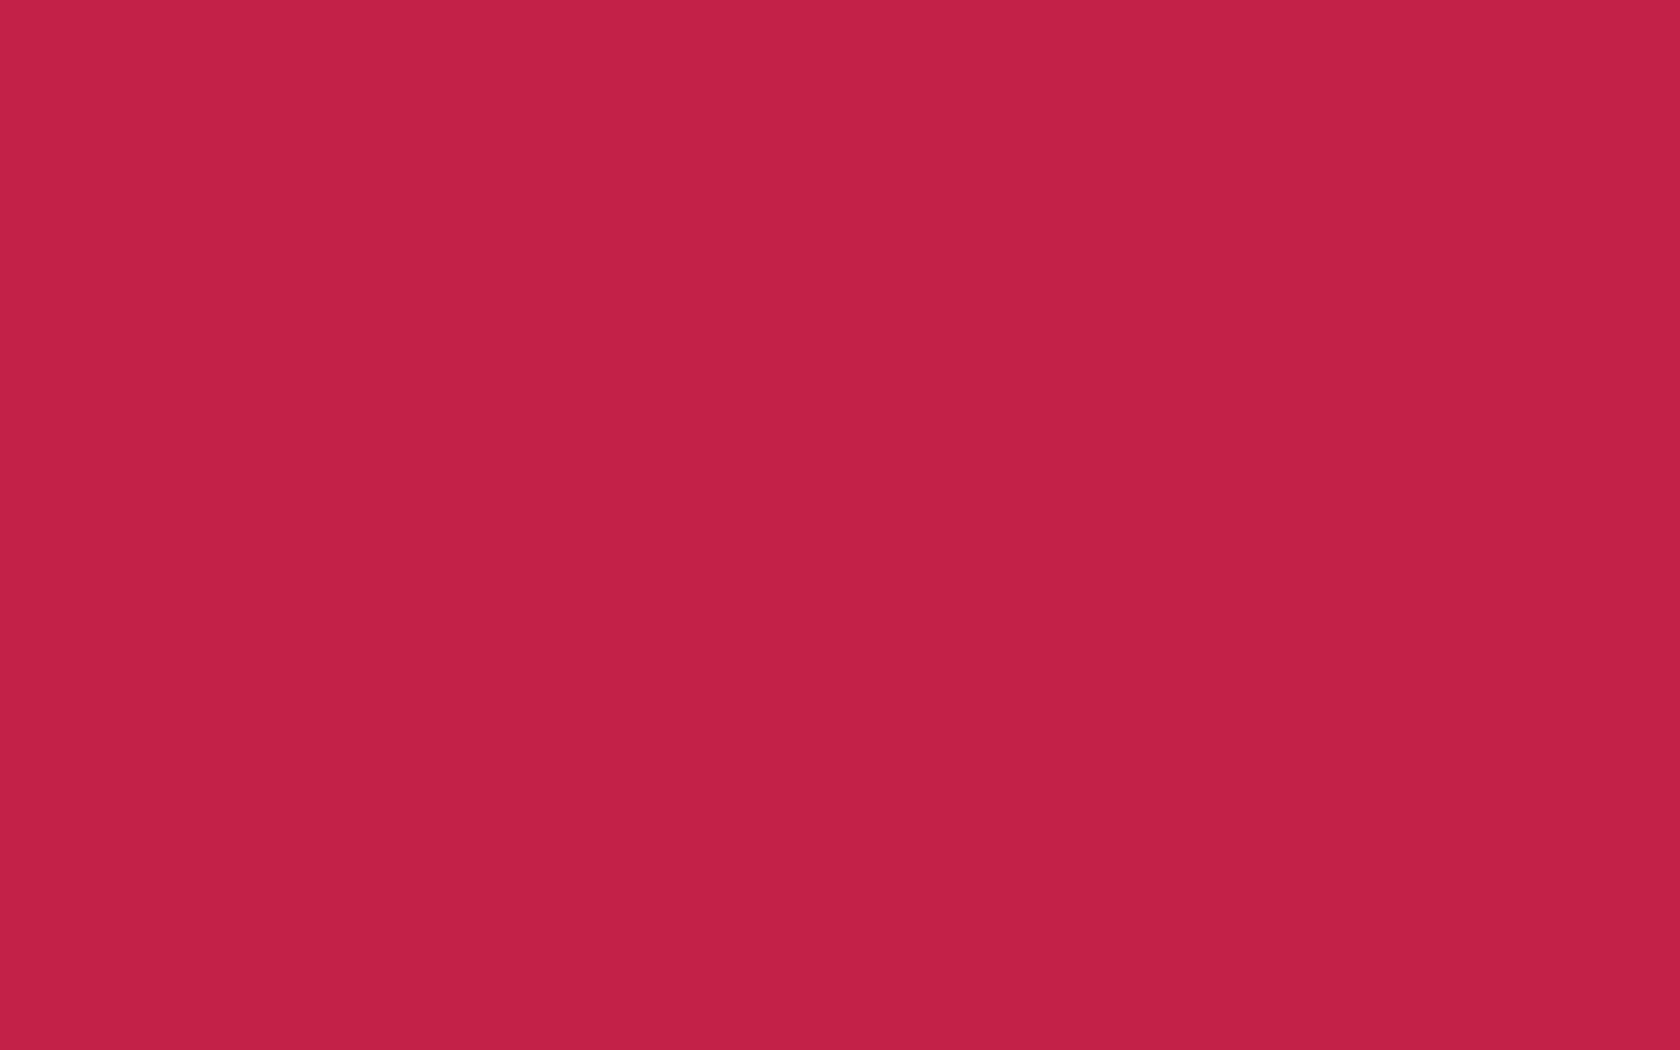 1680x1050 Bright Maroon Solid Color Background